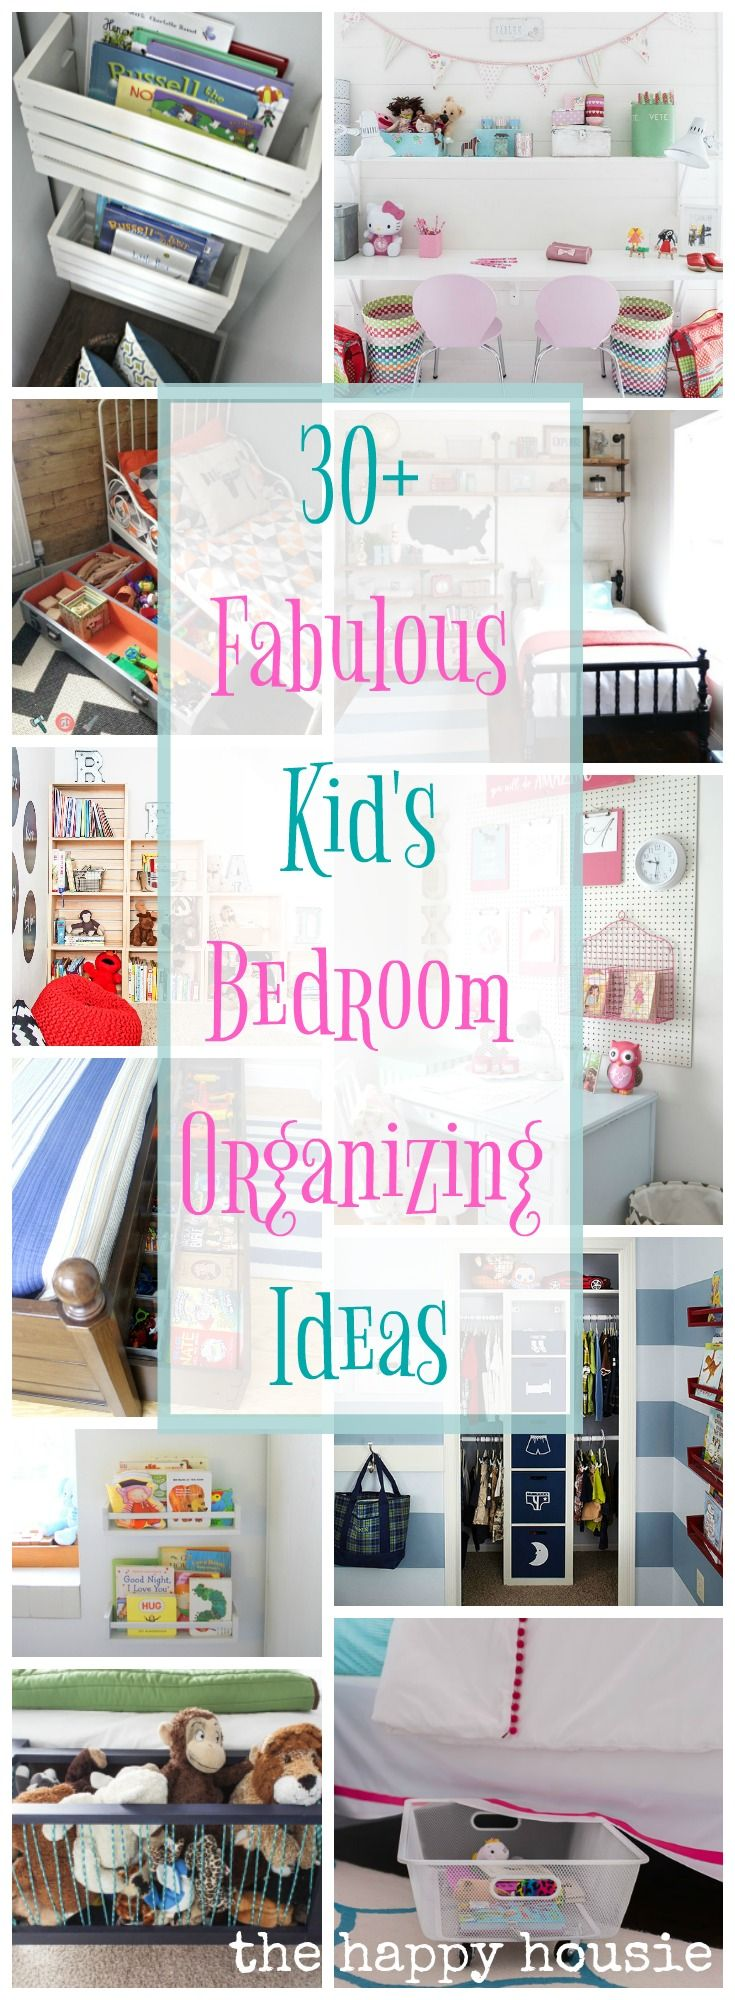 Fantastic Ideas for Organizing Kid's Bedrooms is part of Kids bedroom Organization - Are you looking for some fantastic ideas for organizing kid's bedrooms  From closet organization to under bed storage, book storage and work areas